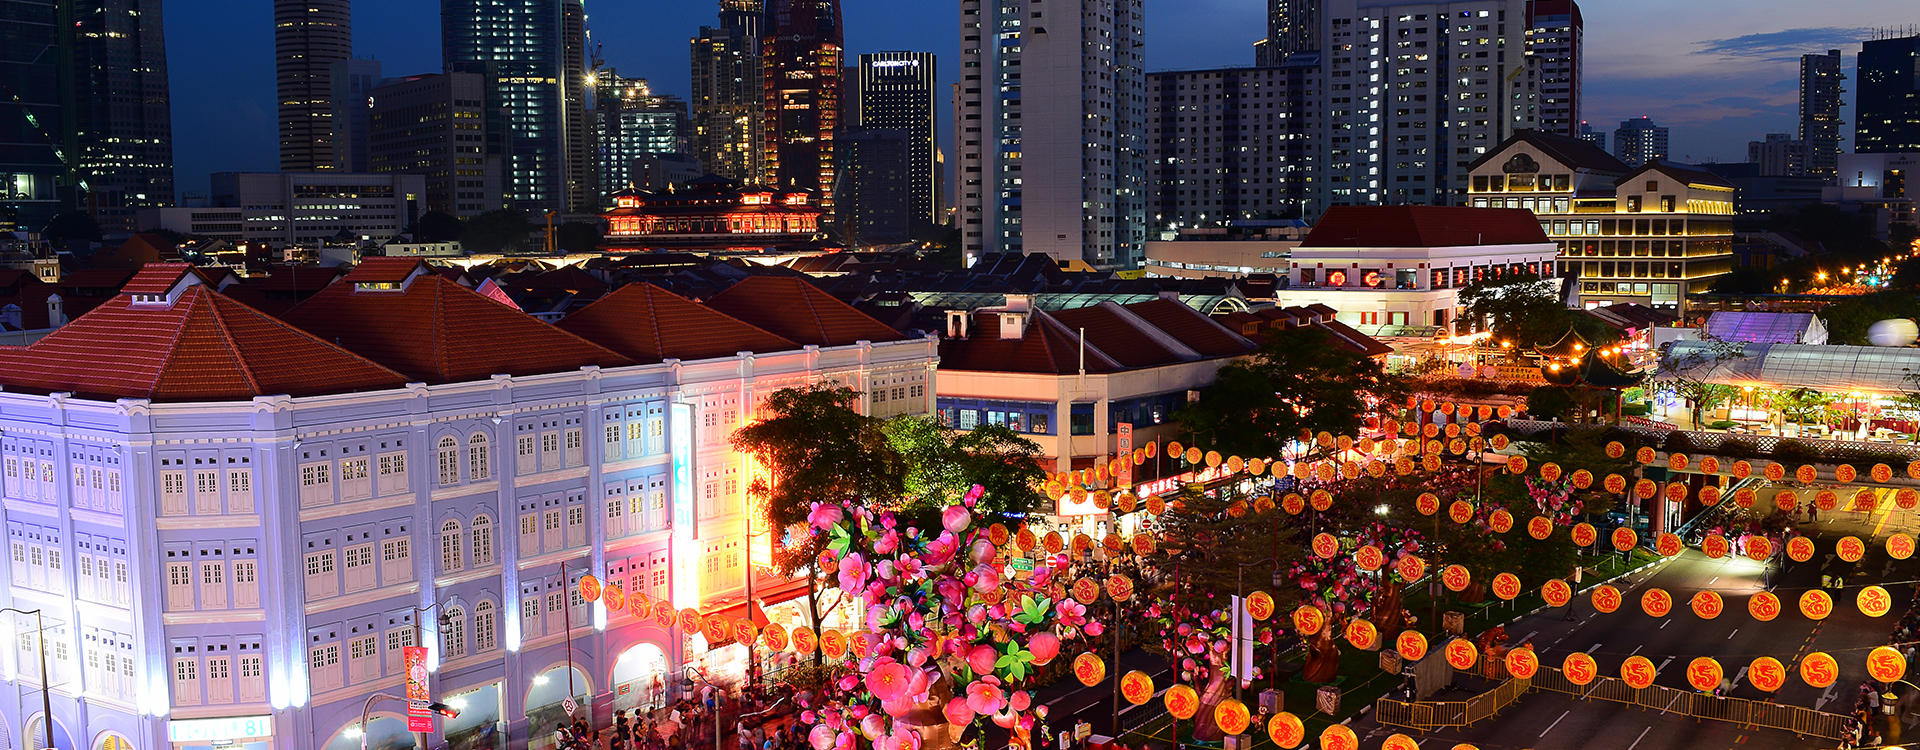 PR-Marina-Bay_Chinatown-Singapore